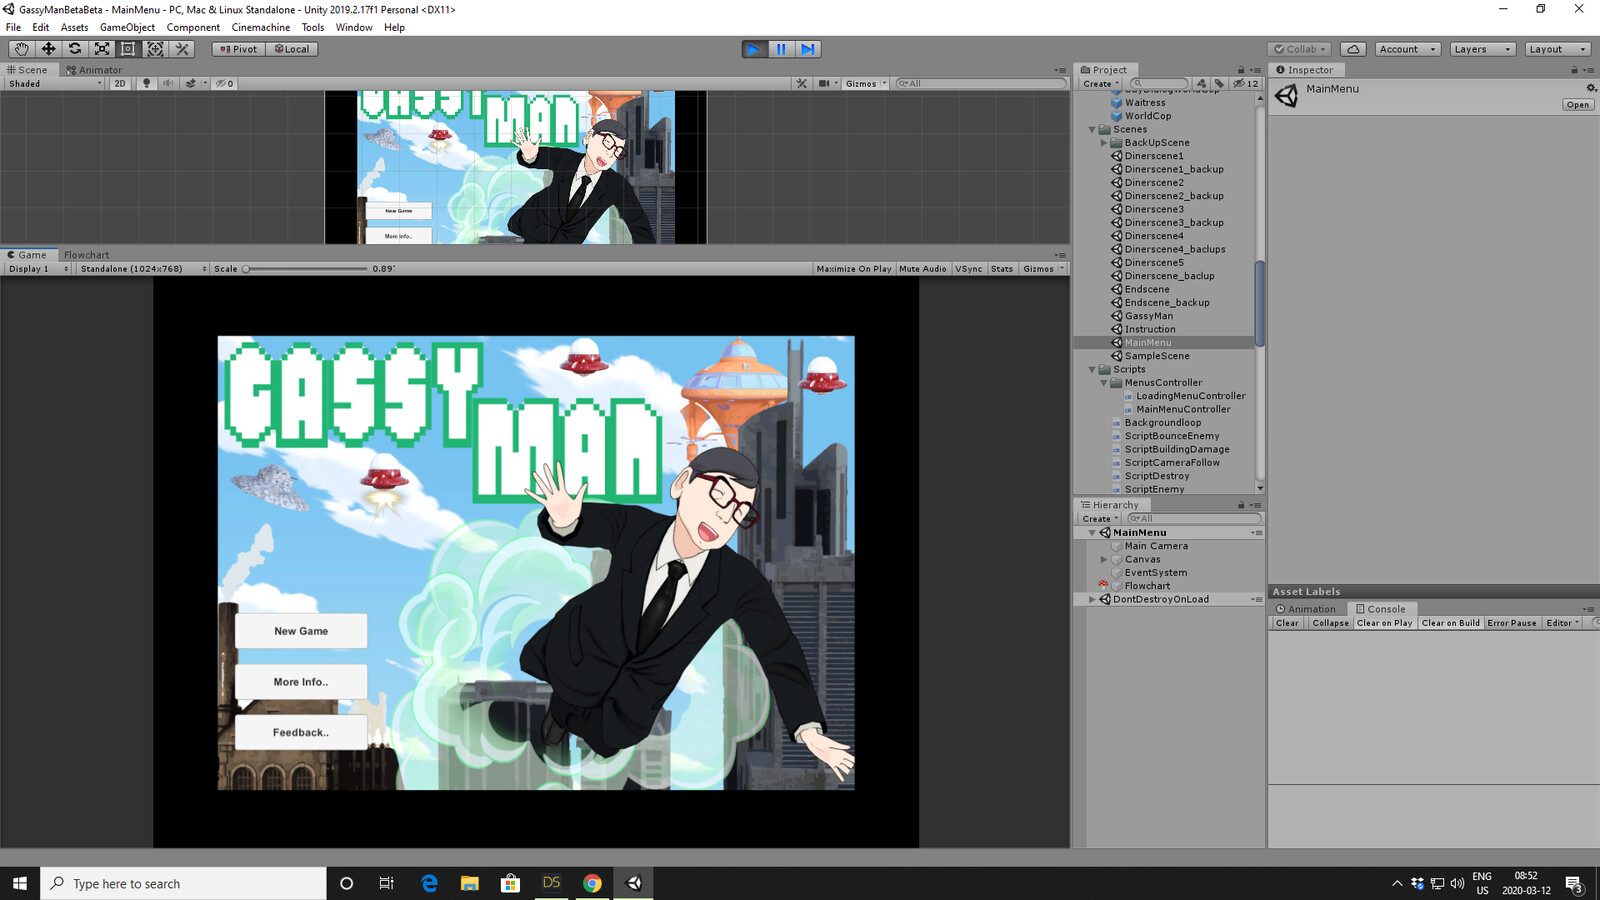 Gassy Man WIP screenshots